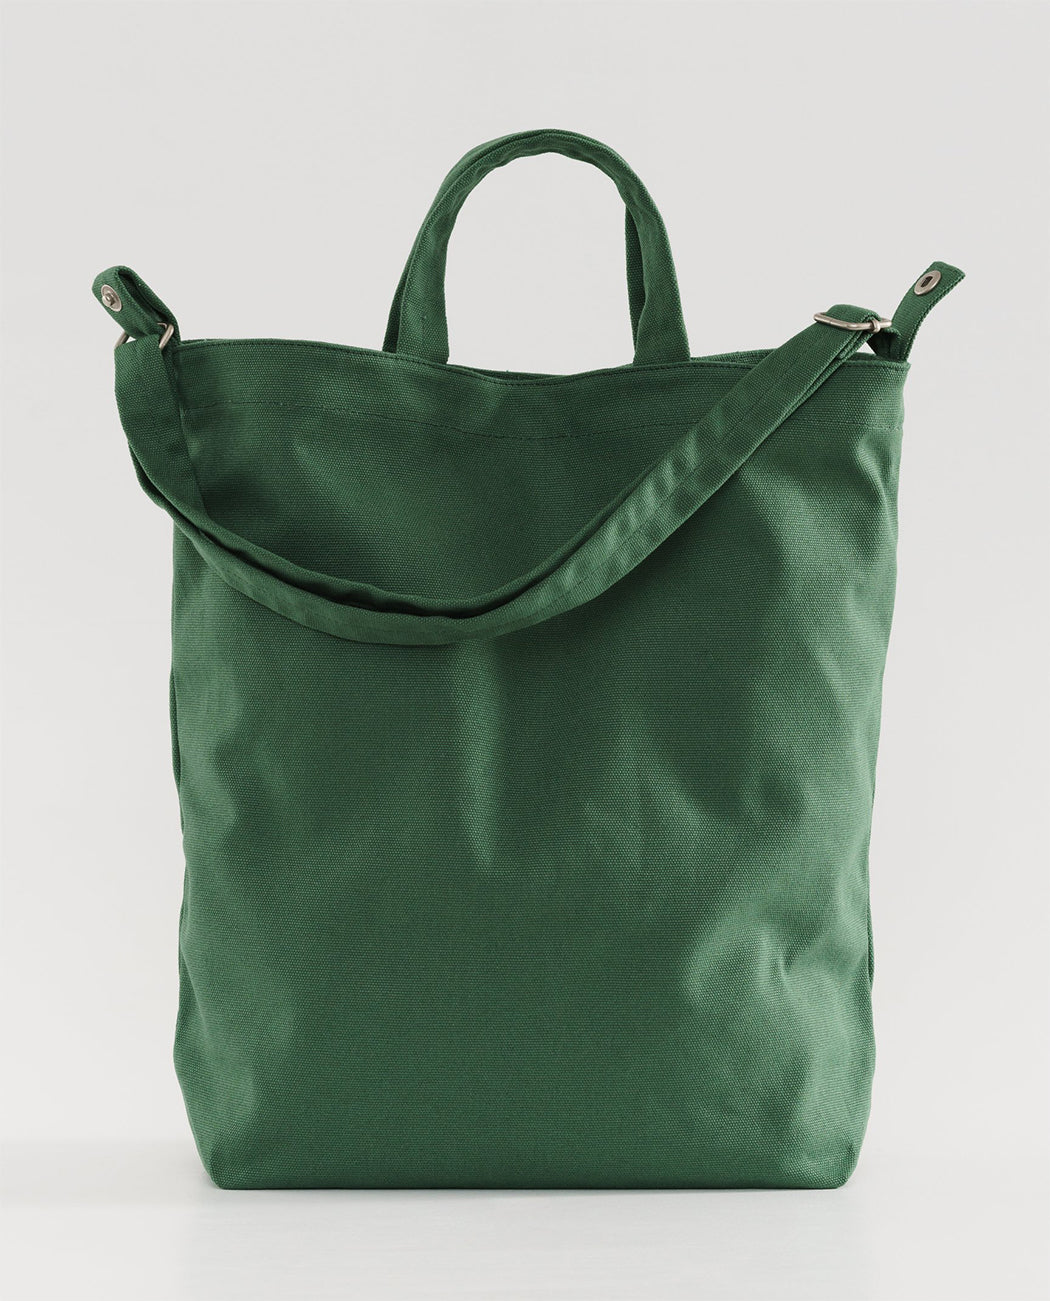 Baggu Duck Bag Eucalyptus Green Canvas Cotton